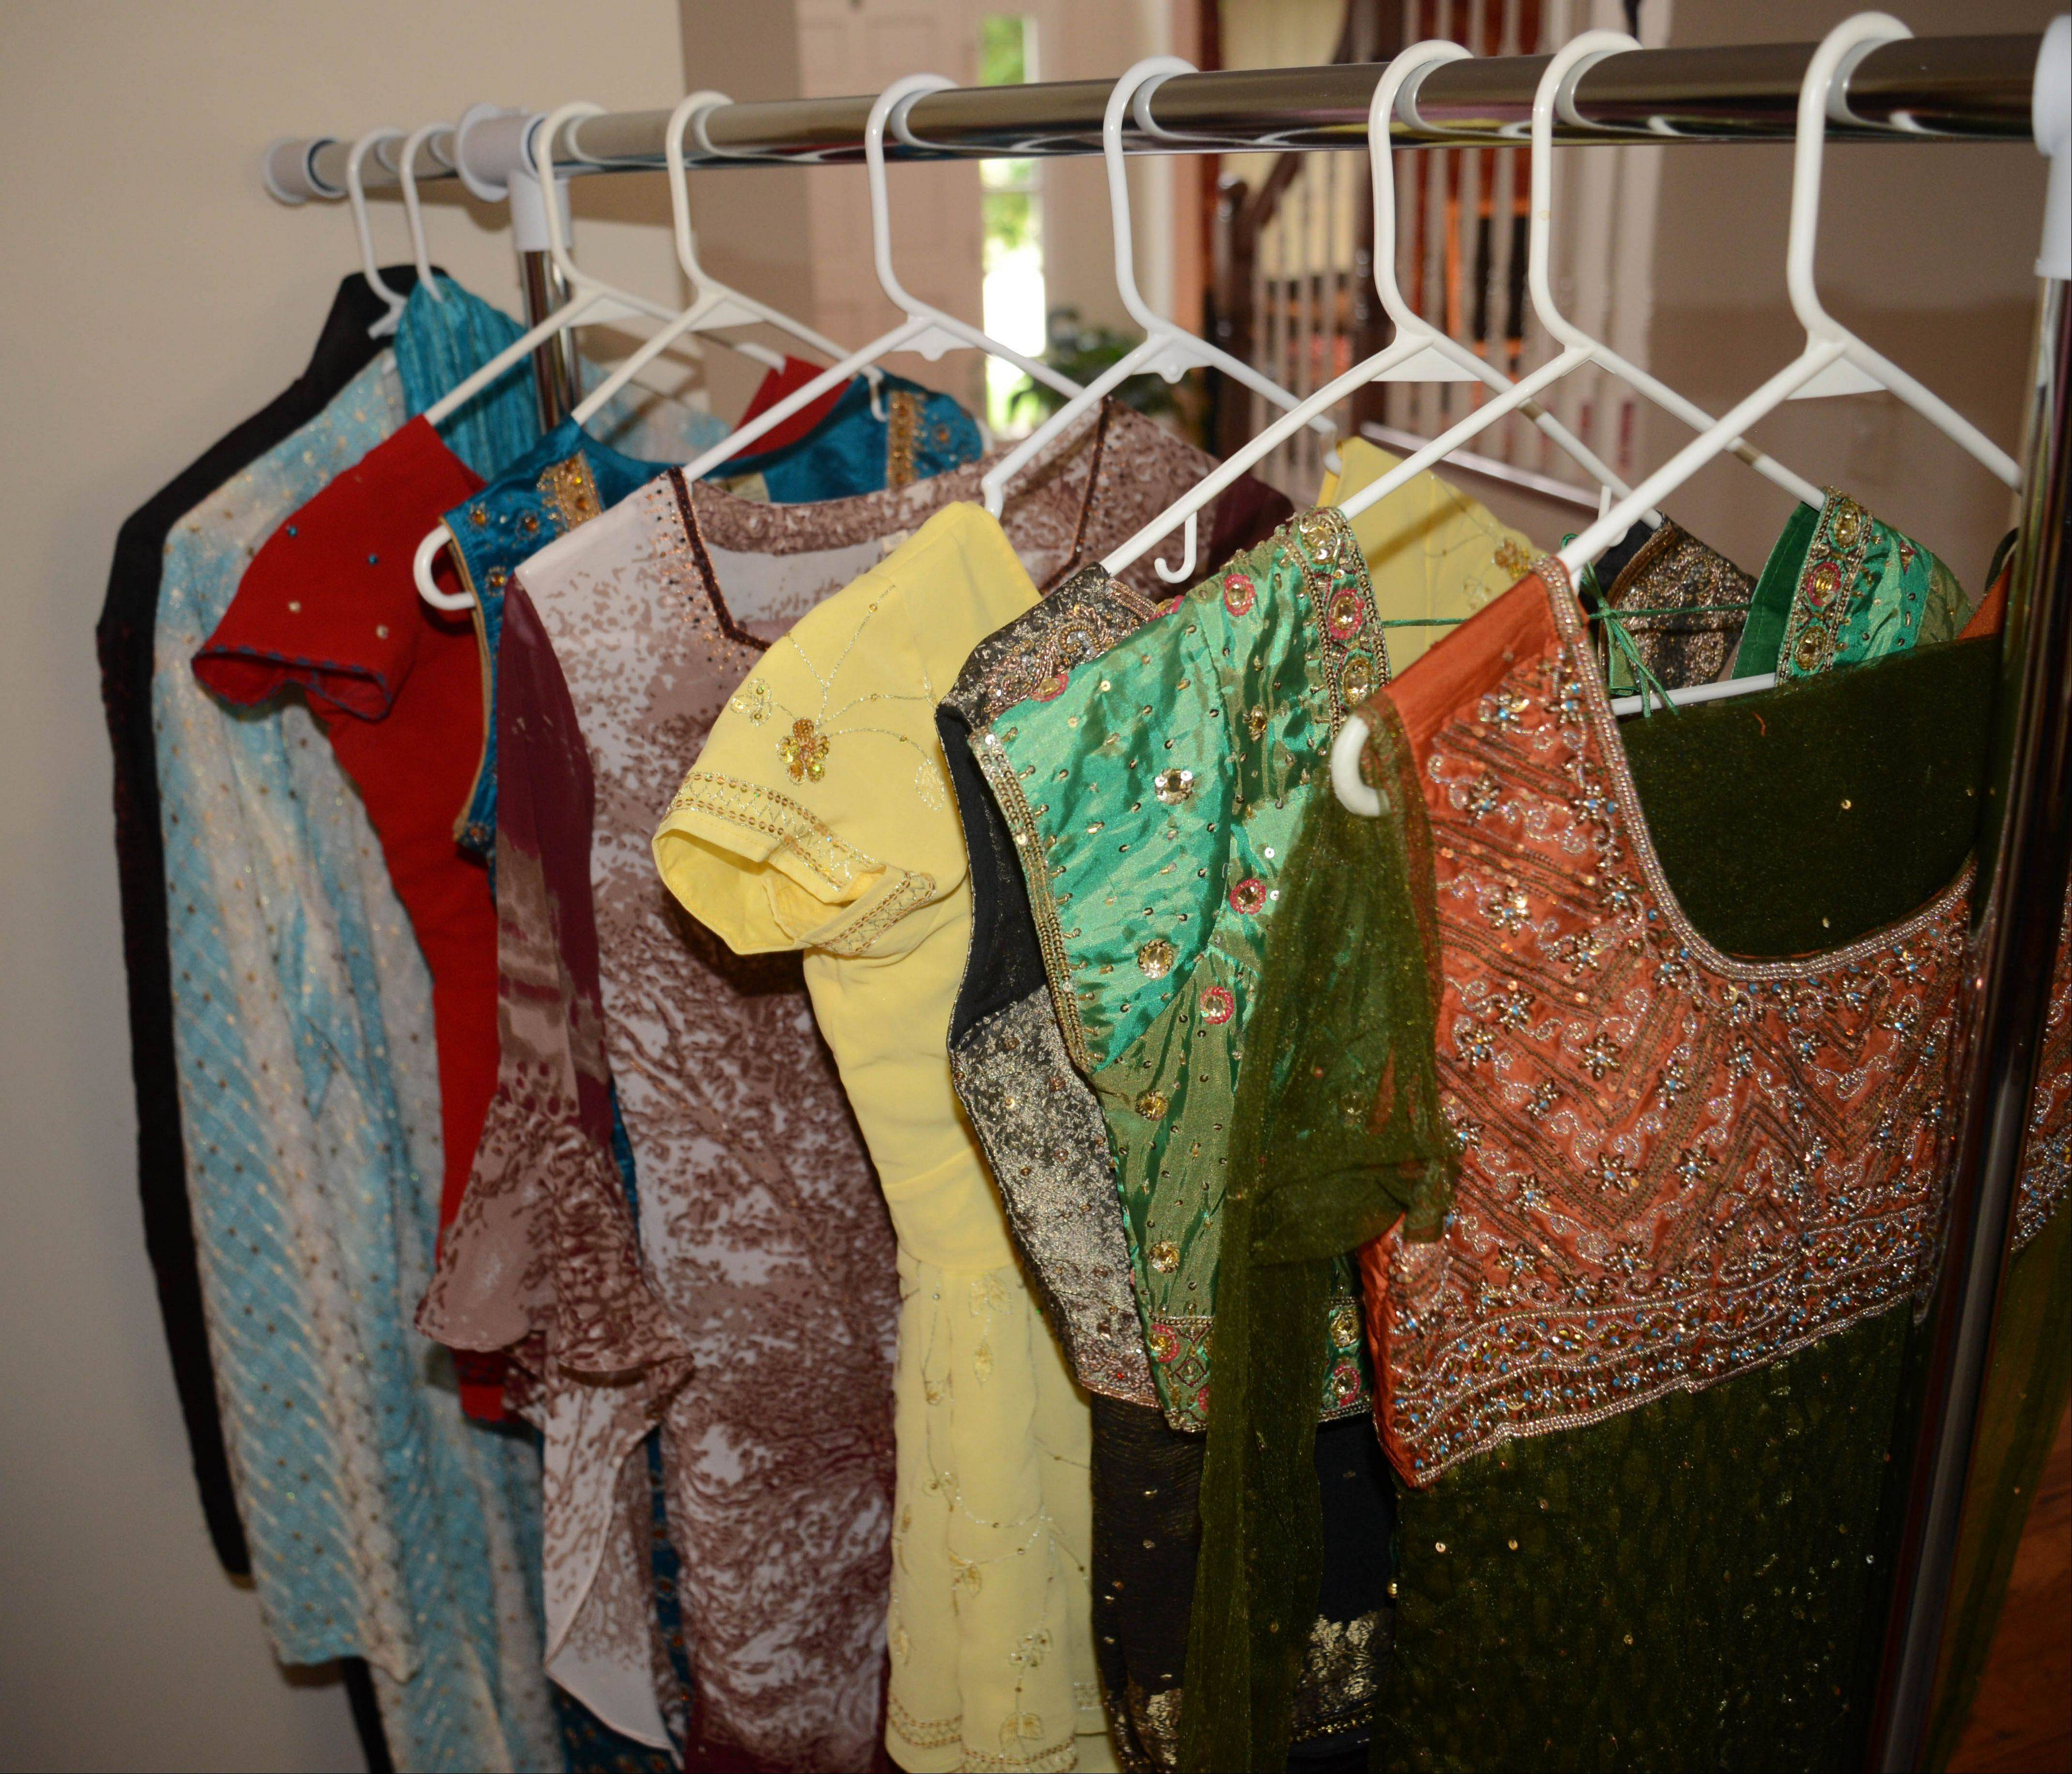 Didi's Wardrobe, an online business run by Westmont mom Dina Patel, sells used Indian clothes online. These are some of the shirts she sells.